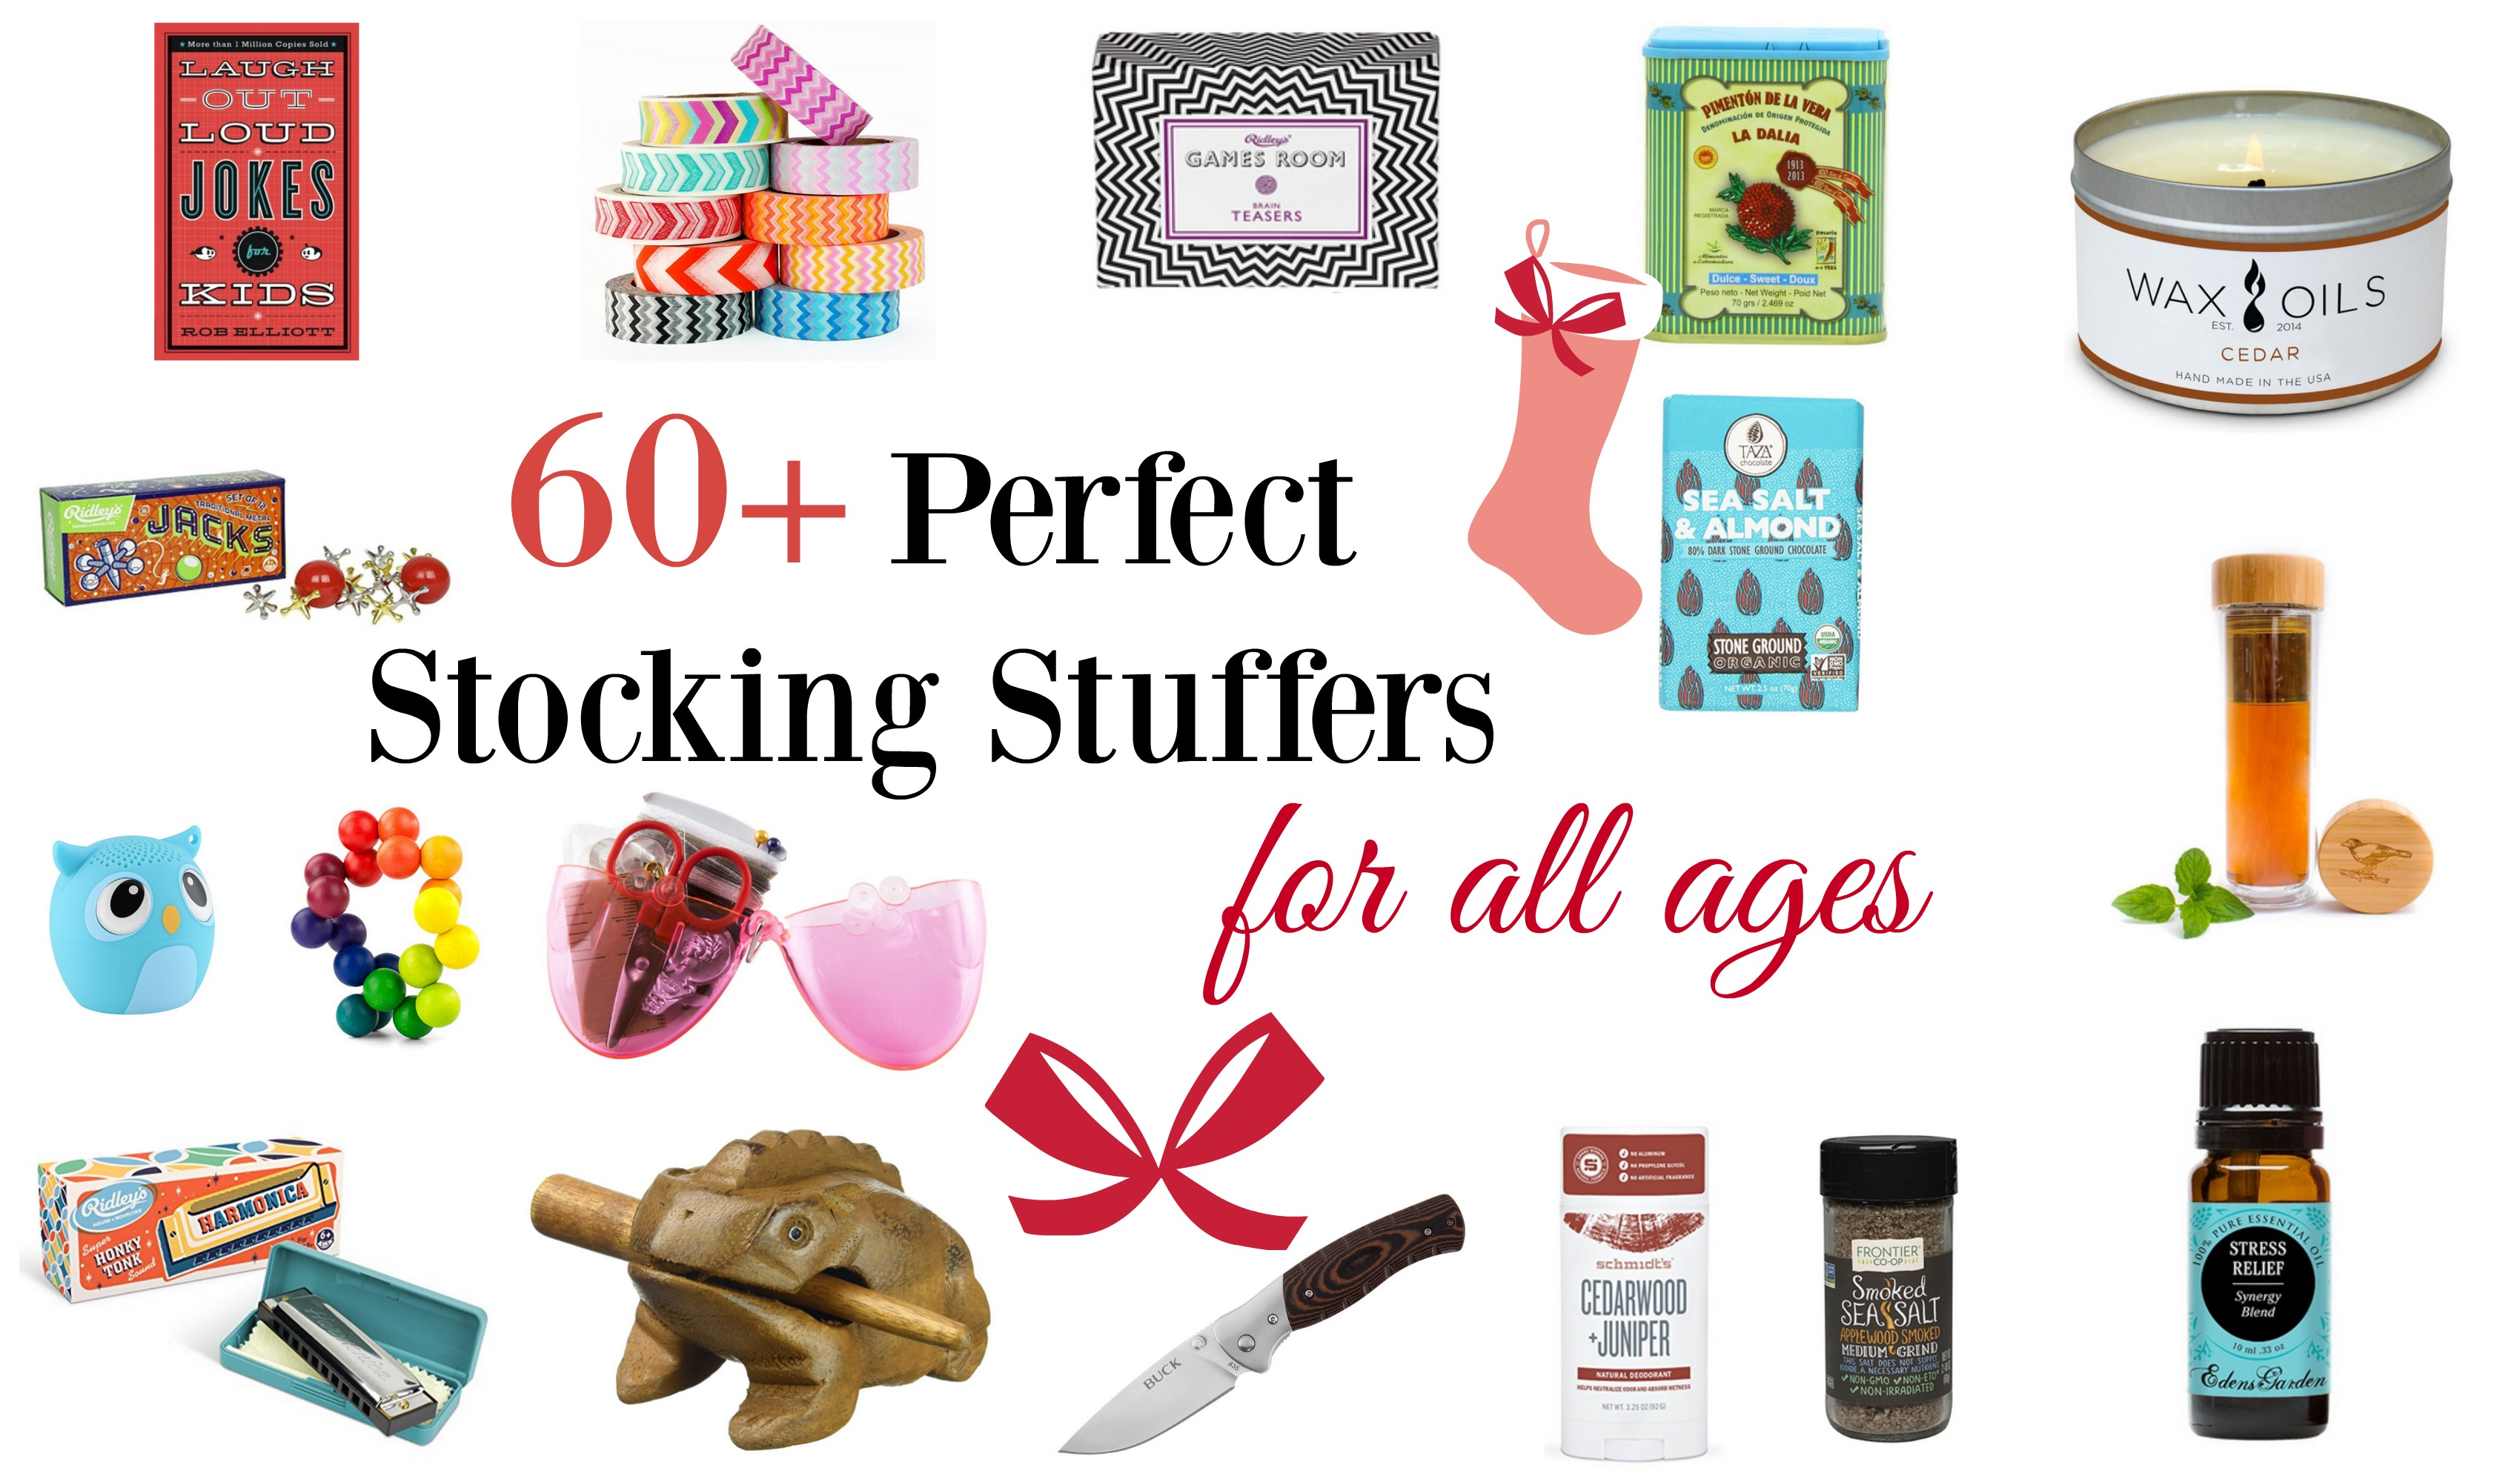 d6a09aa6e82fa 60+ Perfect Stocking Stuffer Ideas - And Here We Are